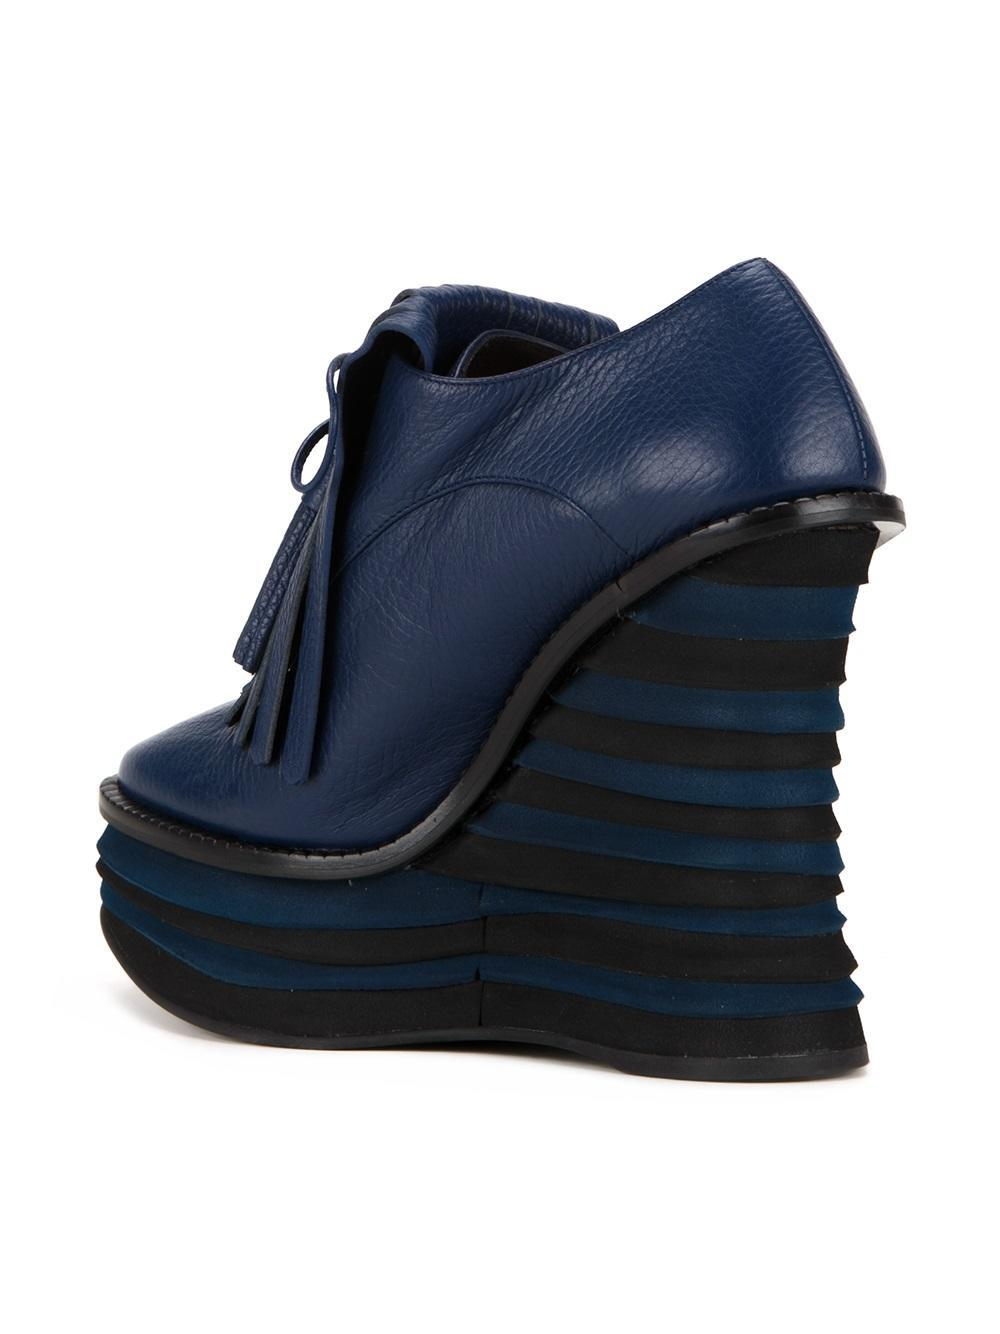 132fac48907 Gallery. Previously sold at  Farfetch · Women s Platform Loafers ...